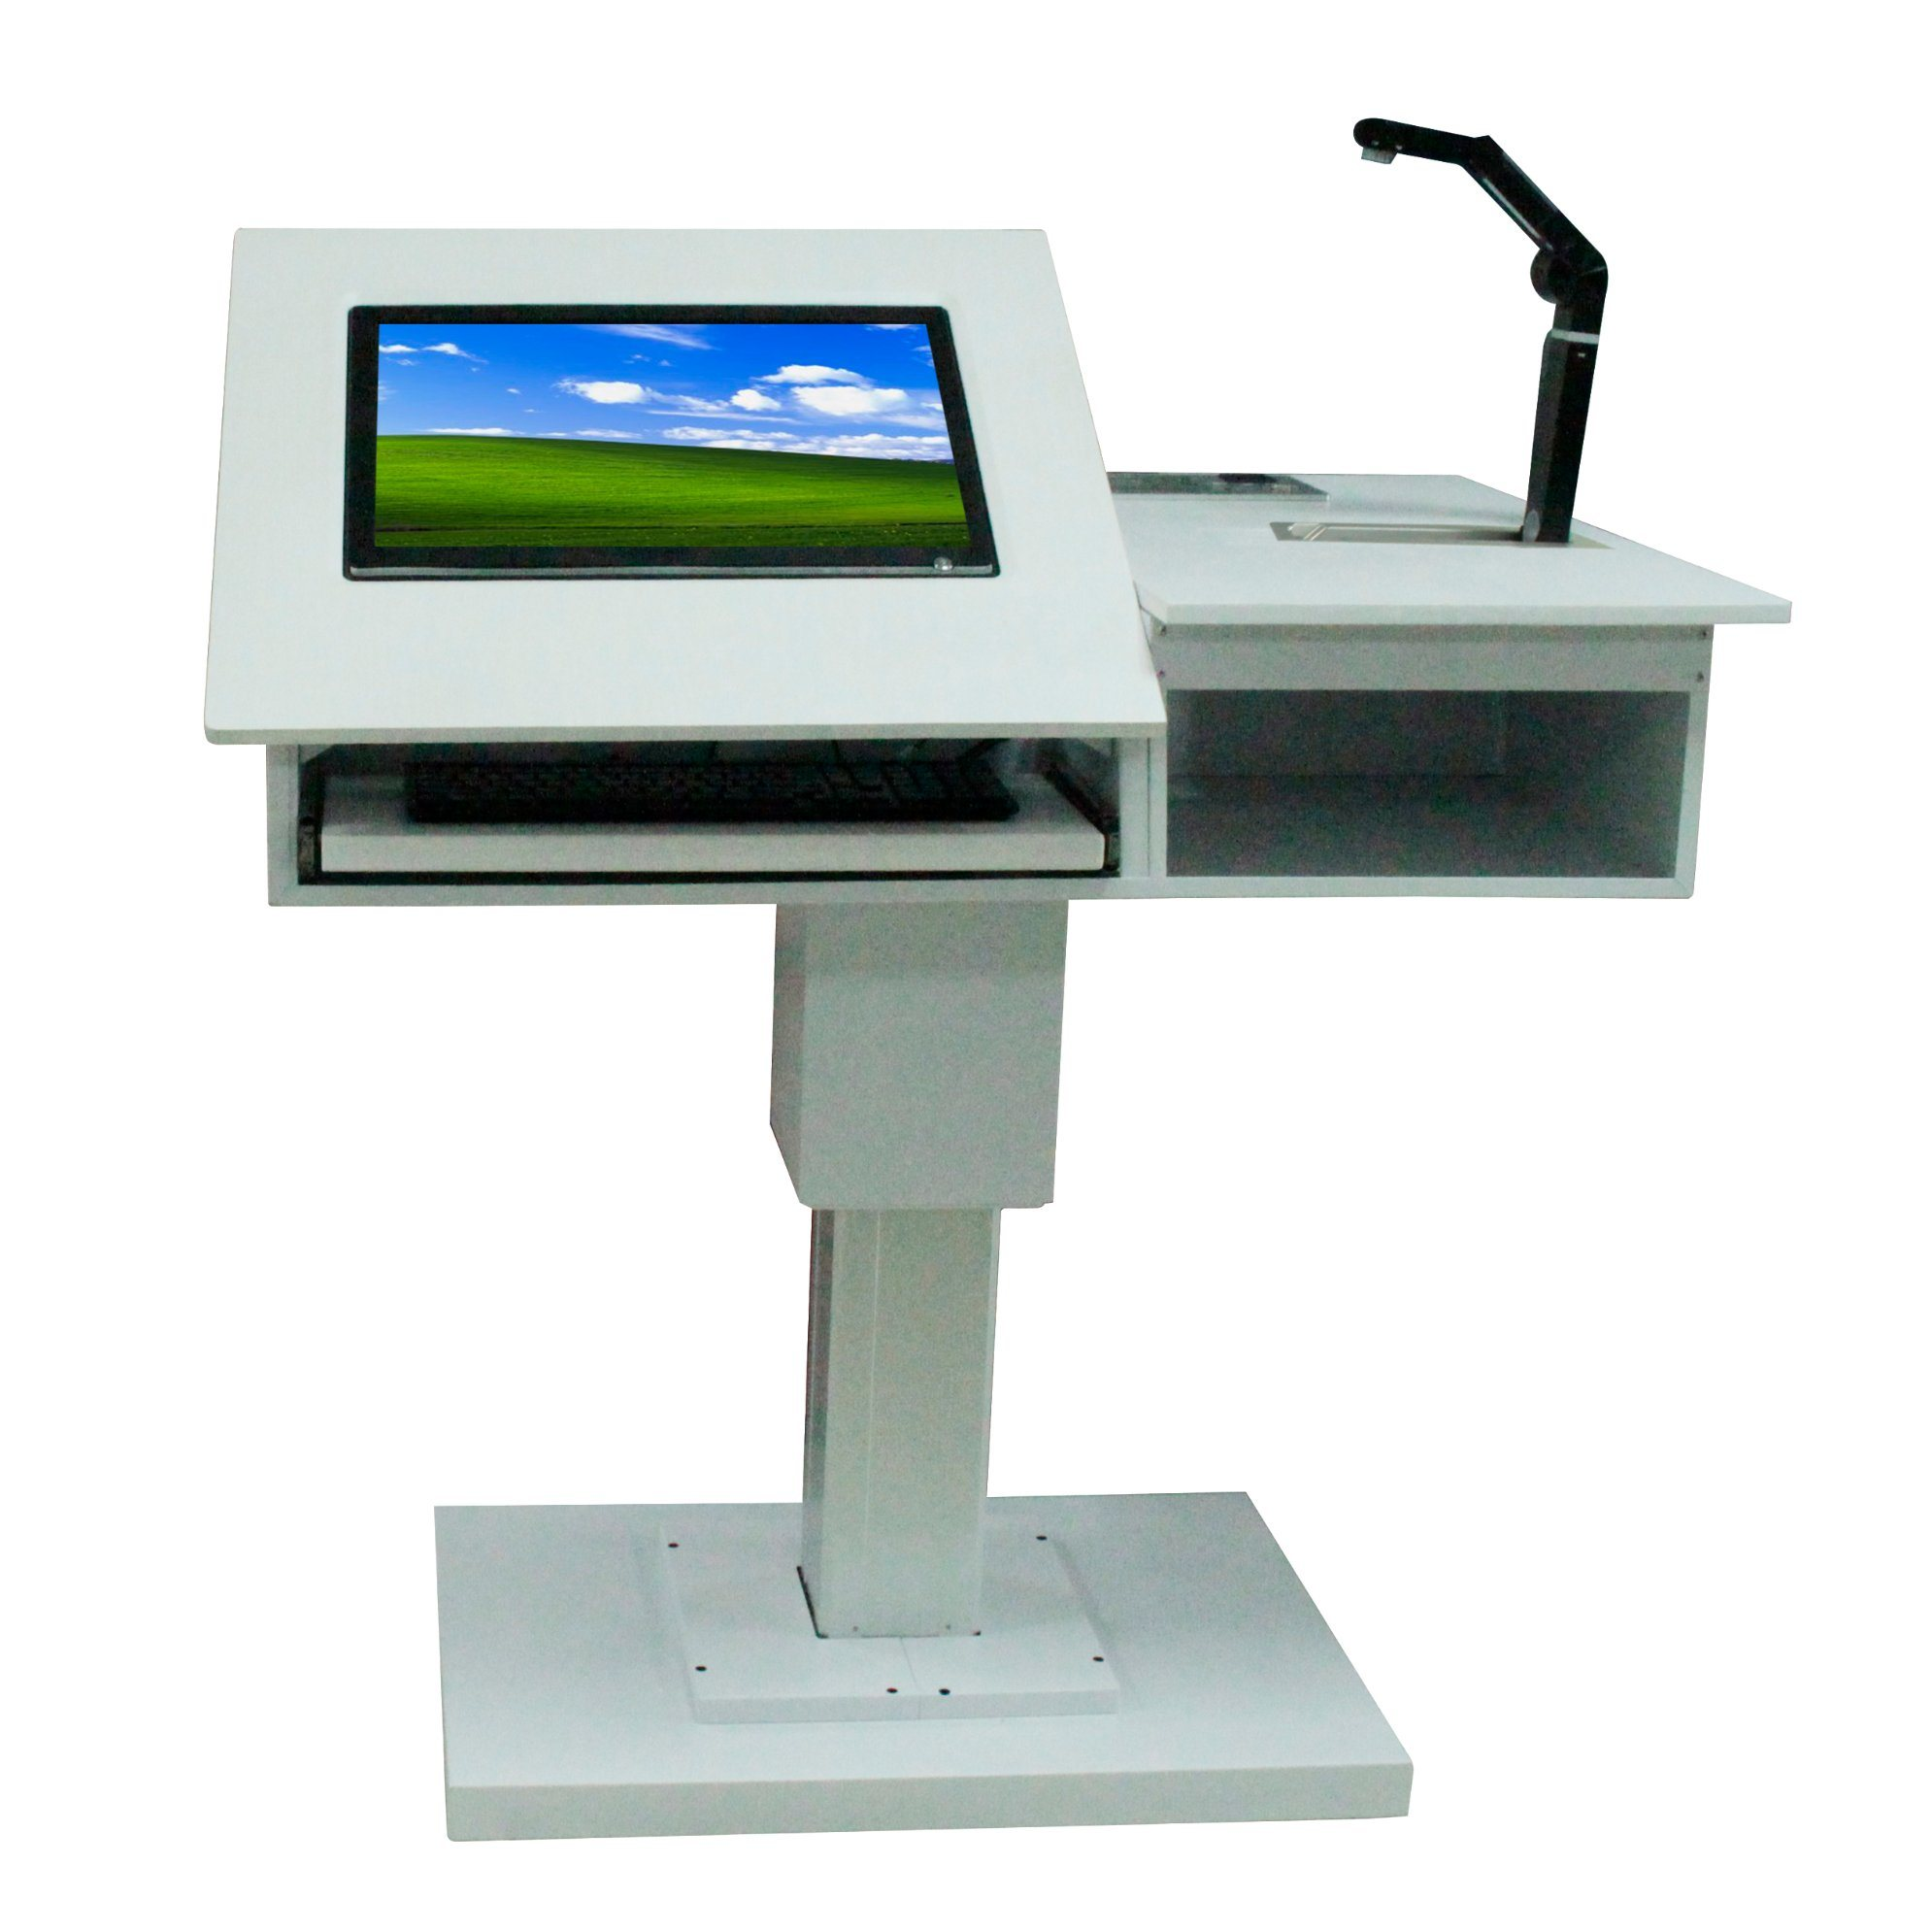 updesk products desk controller bluetooth standing grade electric pro adjustable smart upwrite commercial